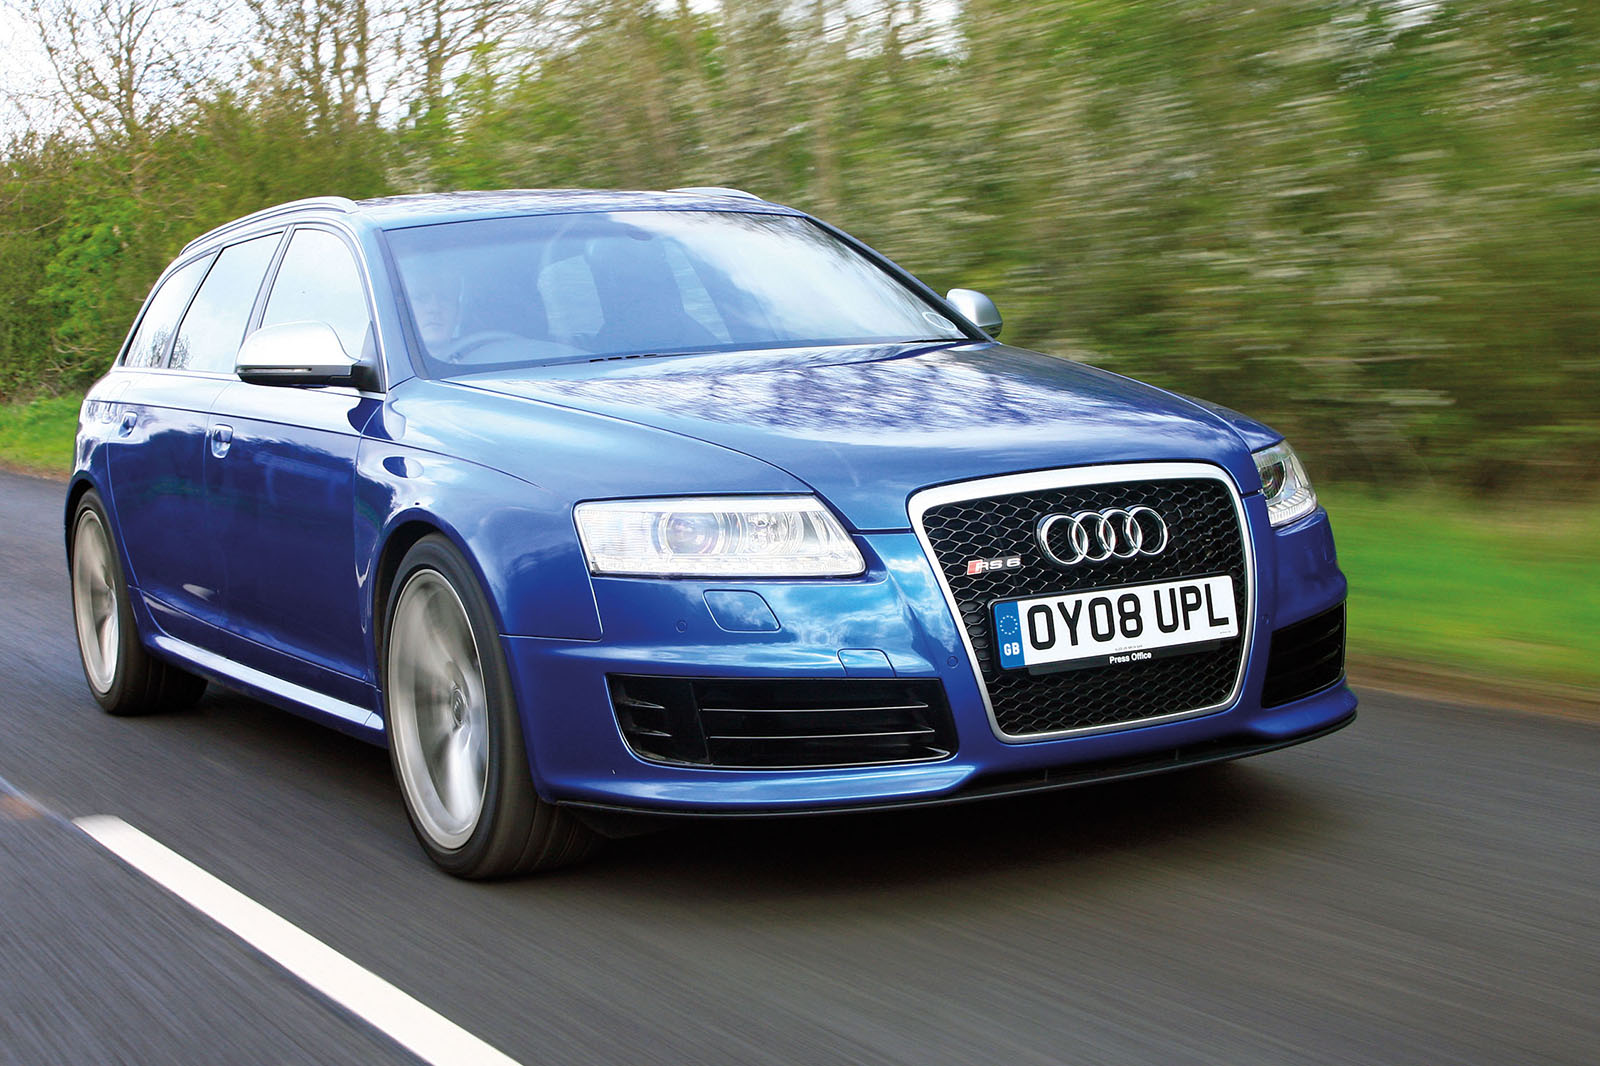 Used car buying guide: Audi RS6